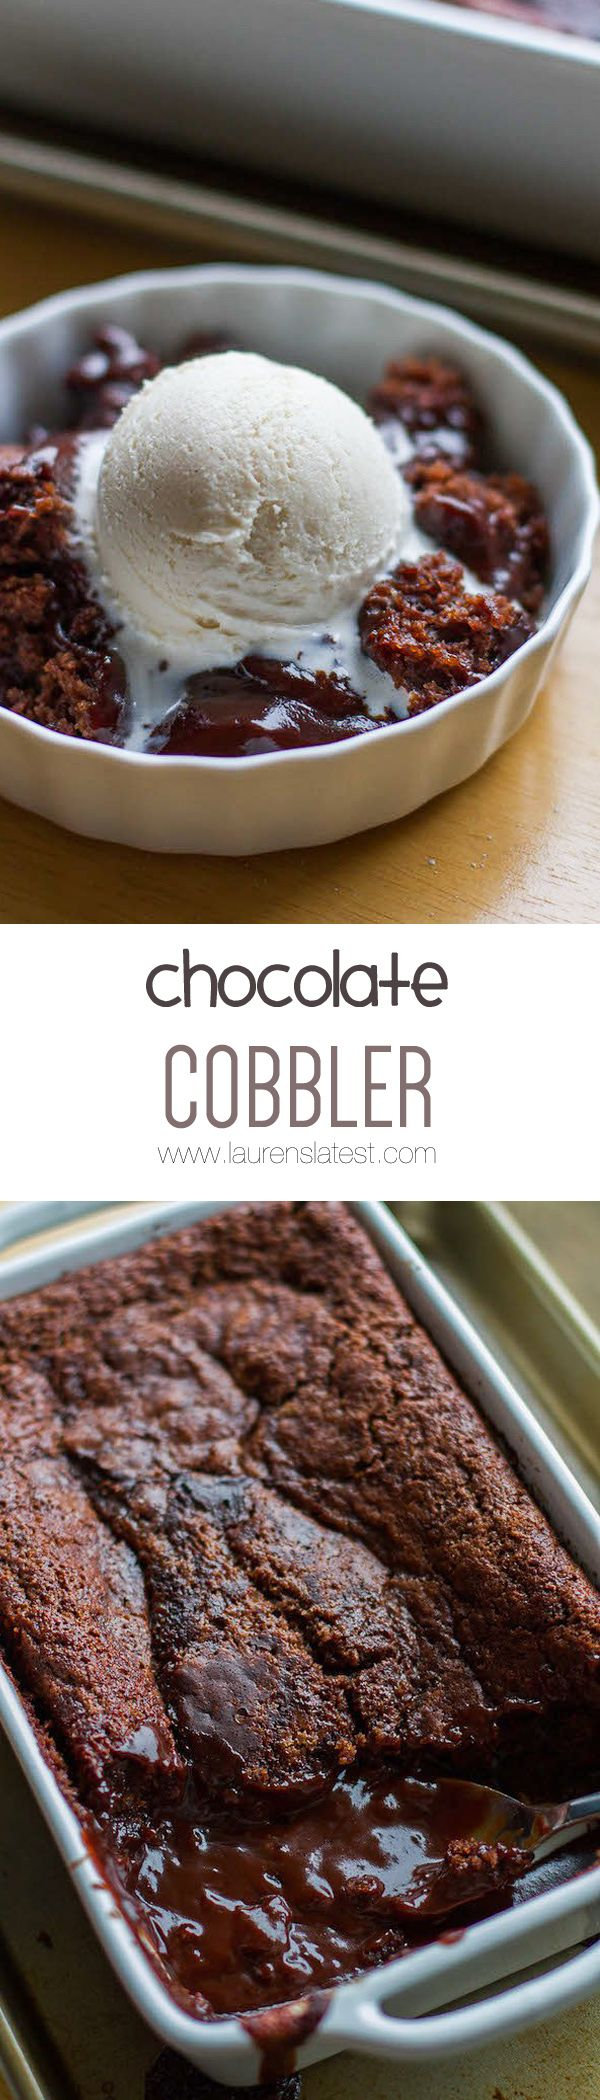 This Chocolate Cobbler is like chocolate pudding meets chocolate lava cake! So rich and delicious, plus so simple to throw together! (healthy chocolate mousse cake)